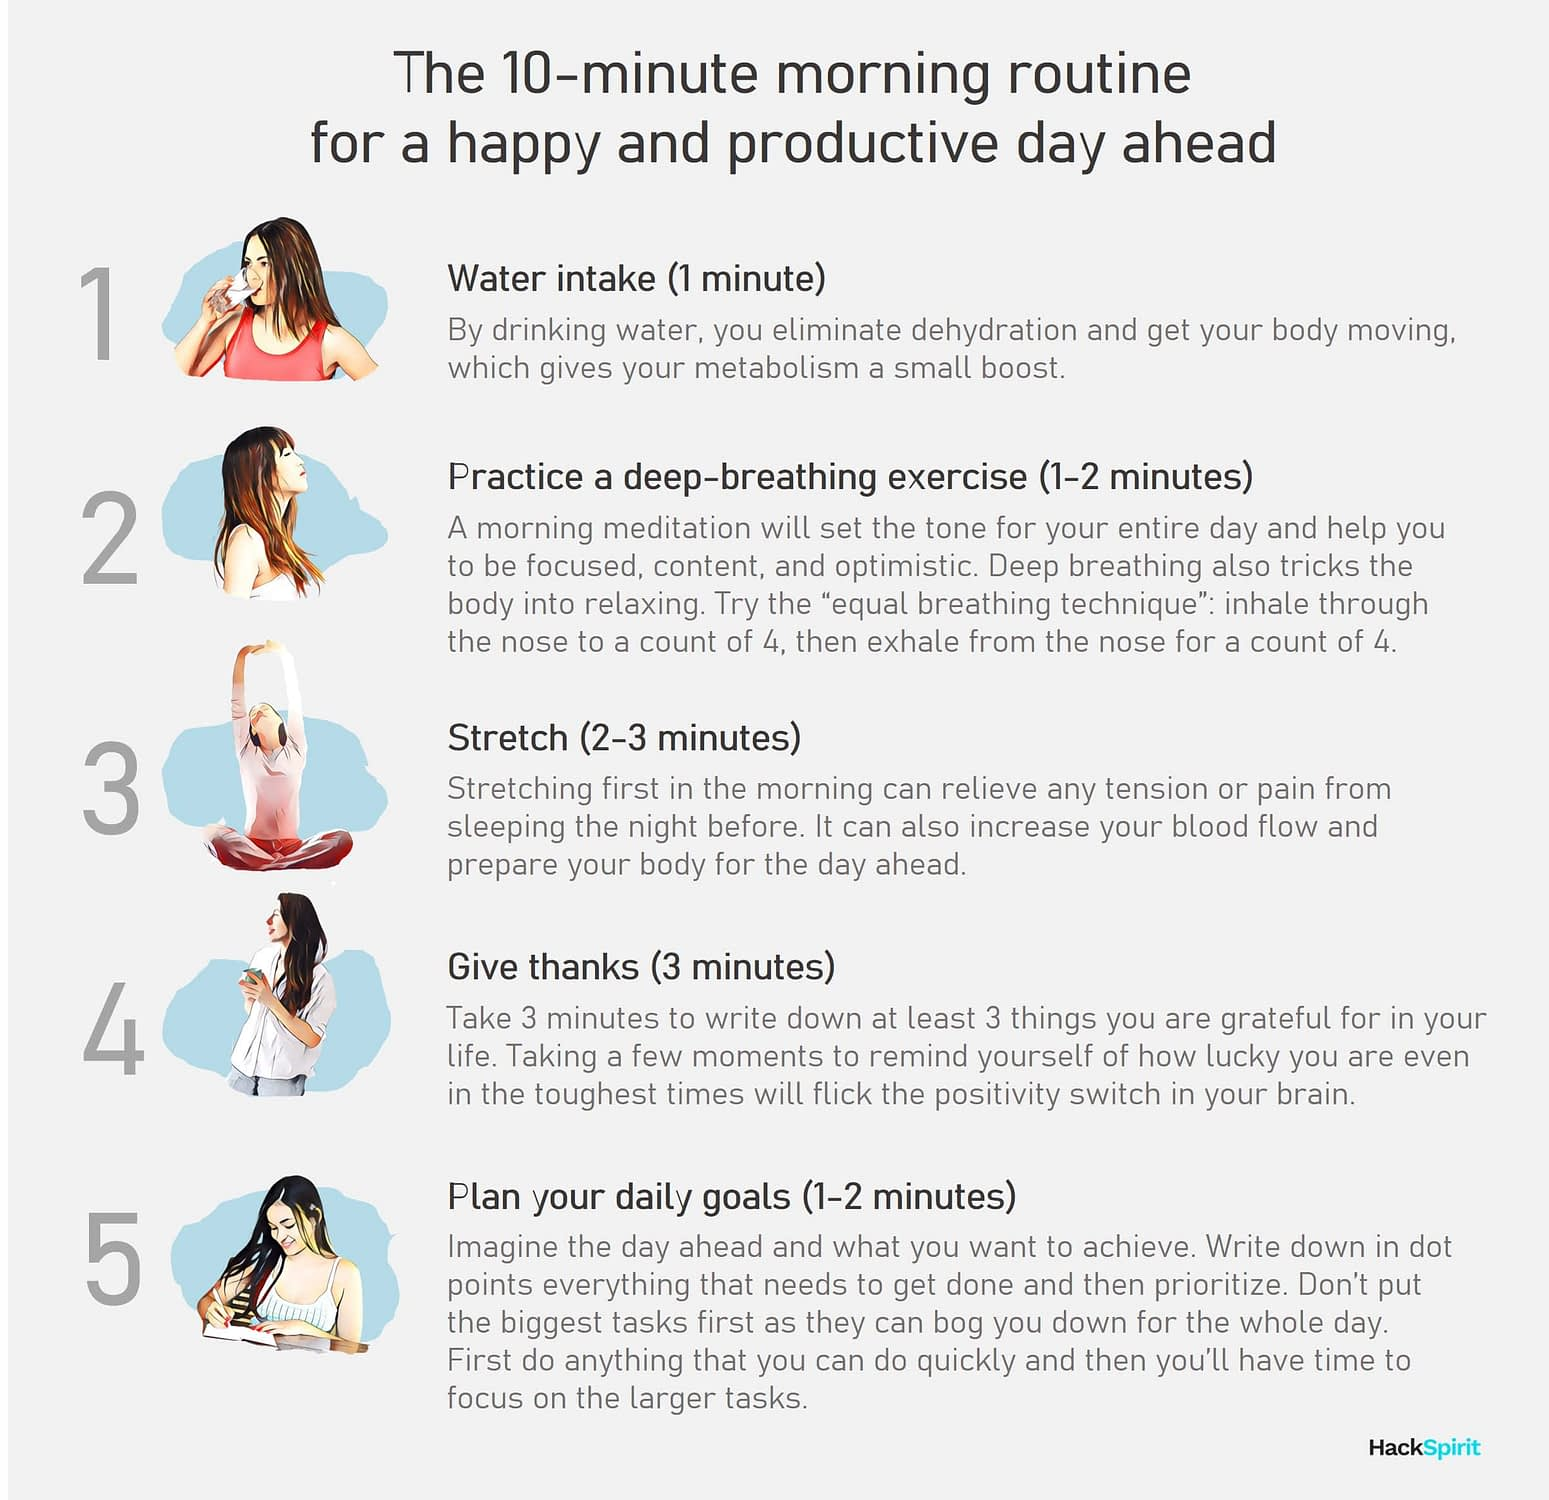 The 10 minute morning routine for a productive day ahead